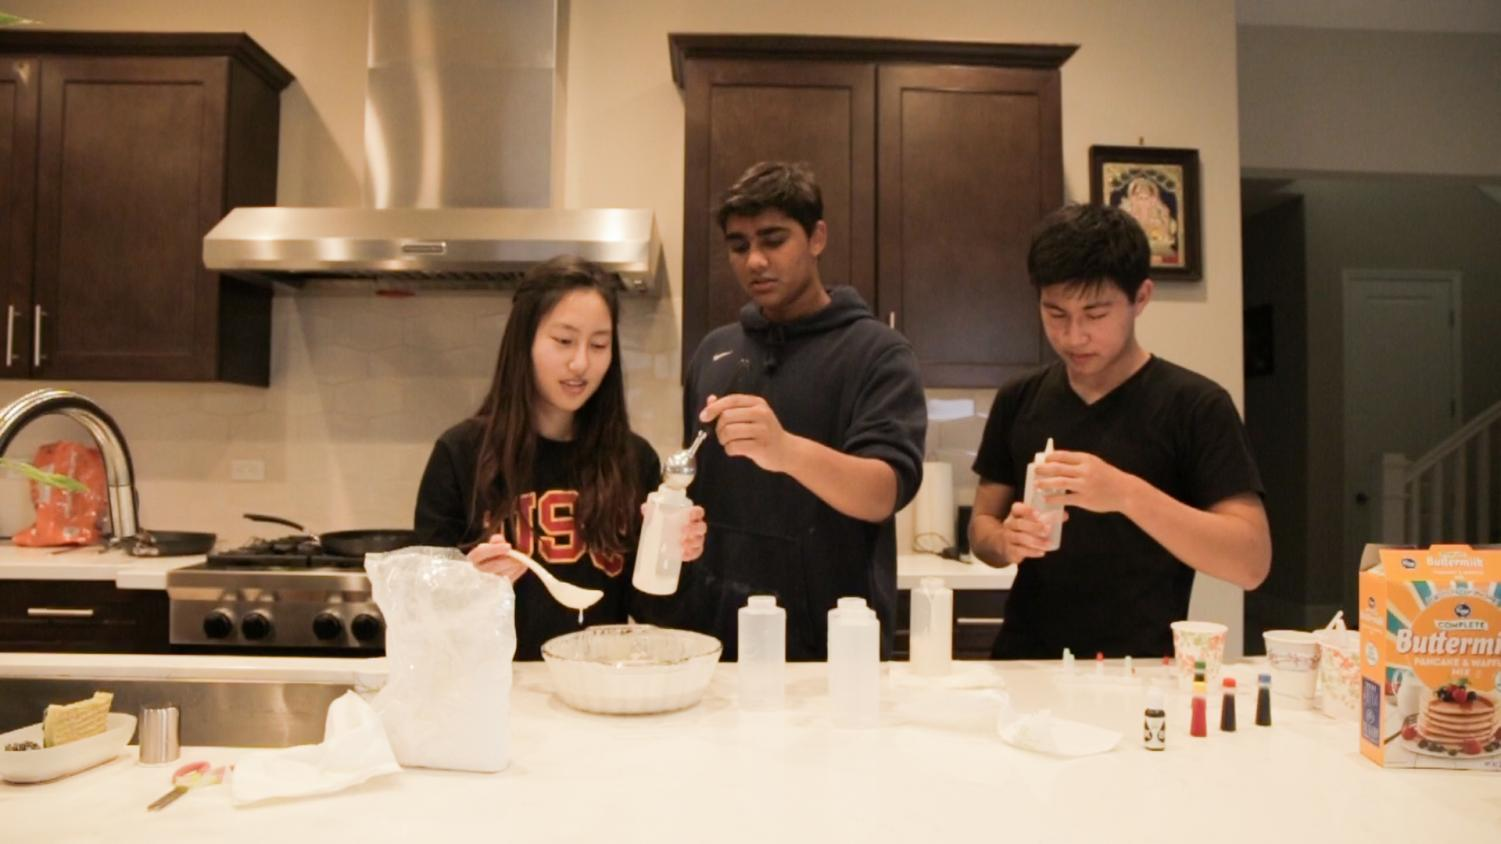 (FLOUR)ISHING ARTISTS: Juniors Erin Kim, Varun Vishnubhotla, and Anlon Zhu (left to right) fill squirt bottles with colored pancake batter.